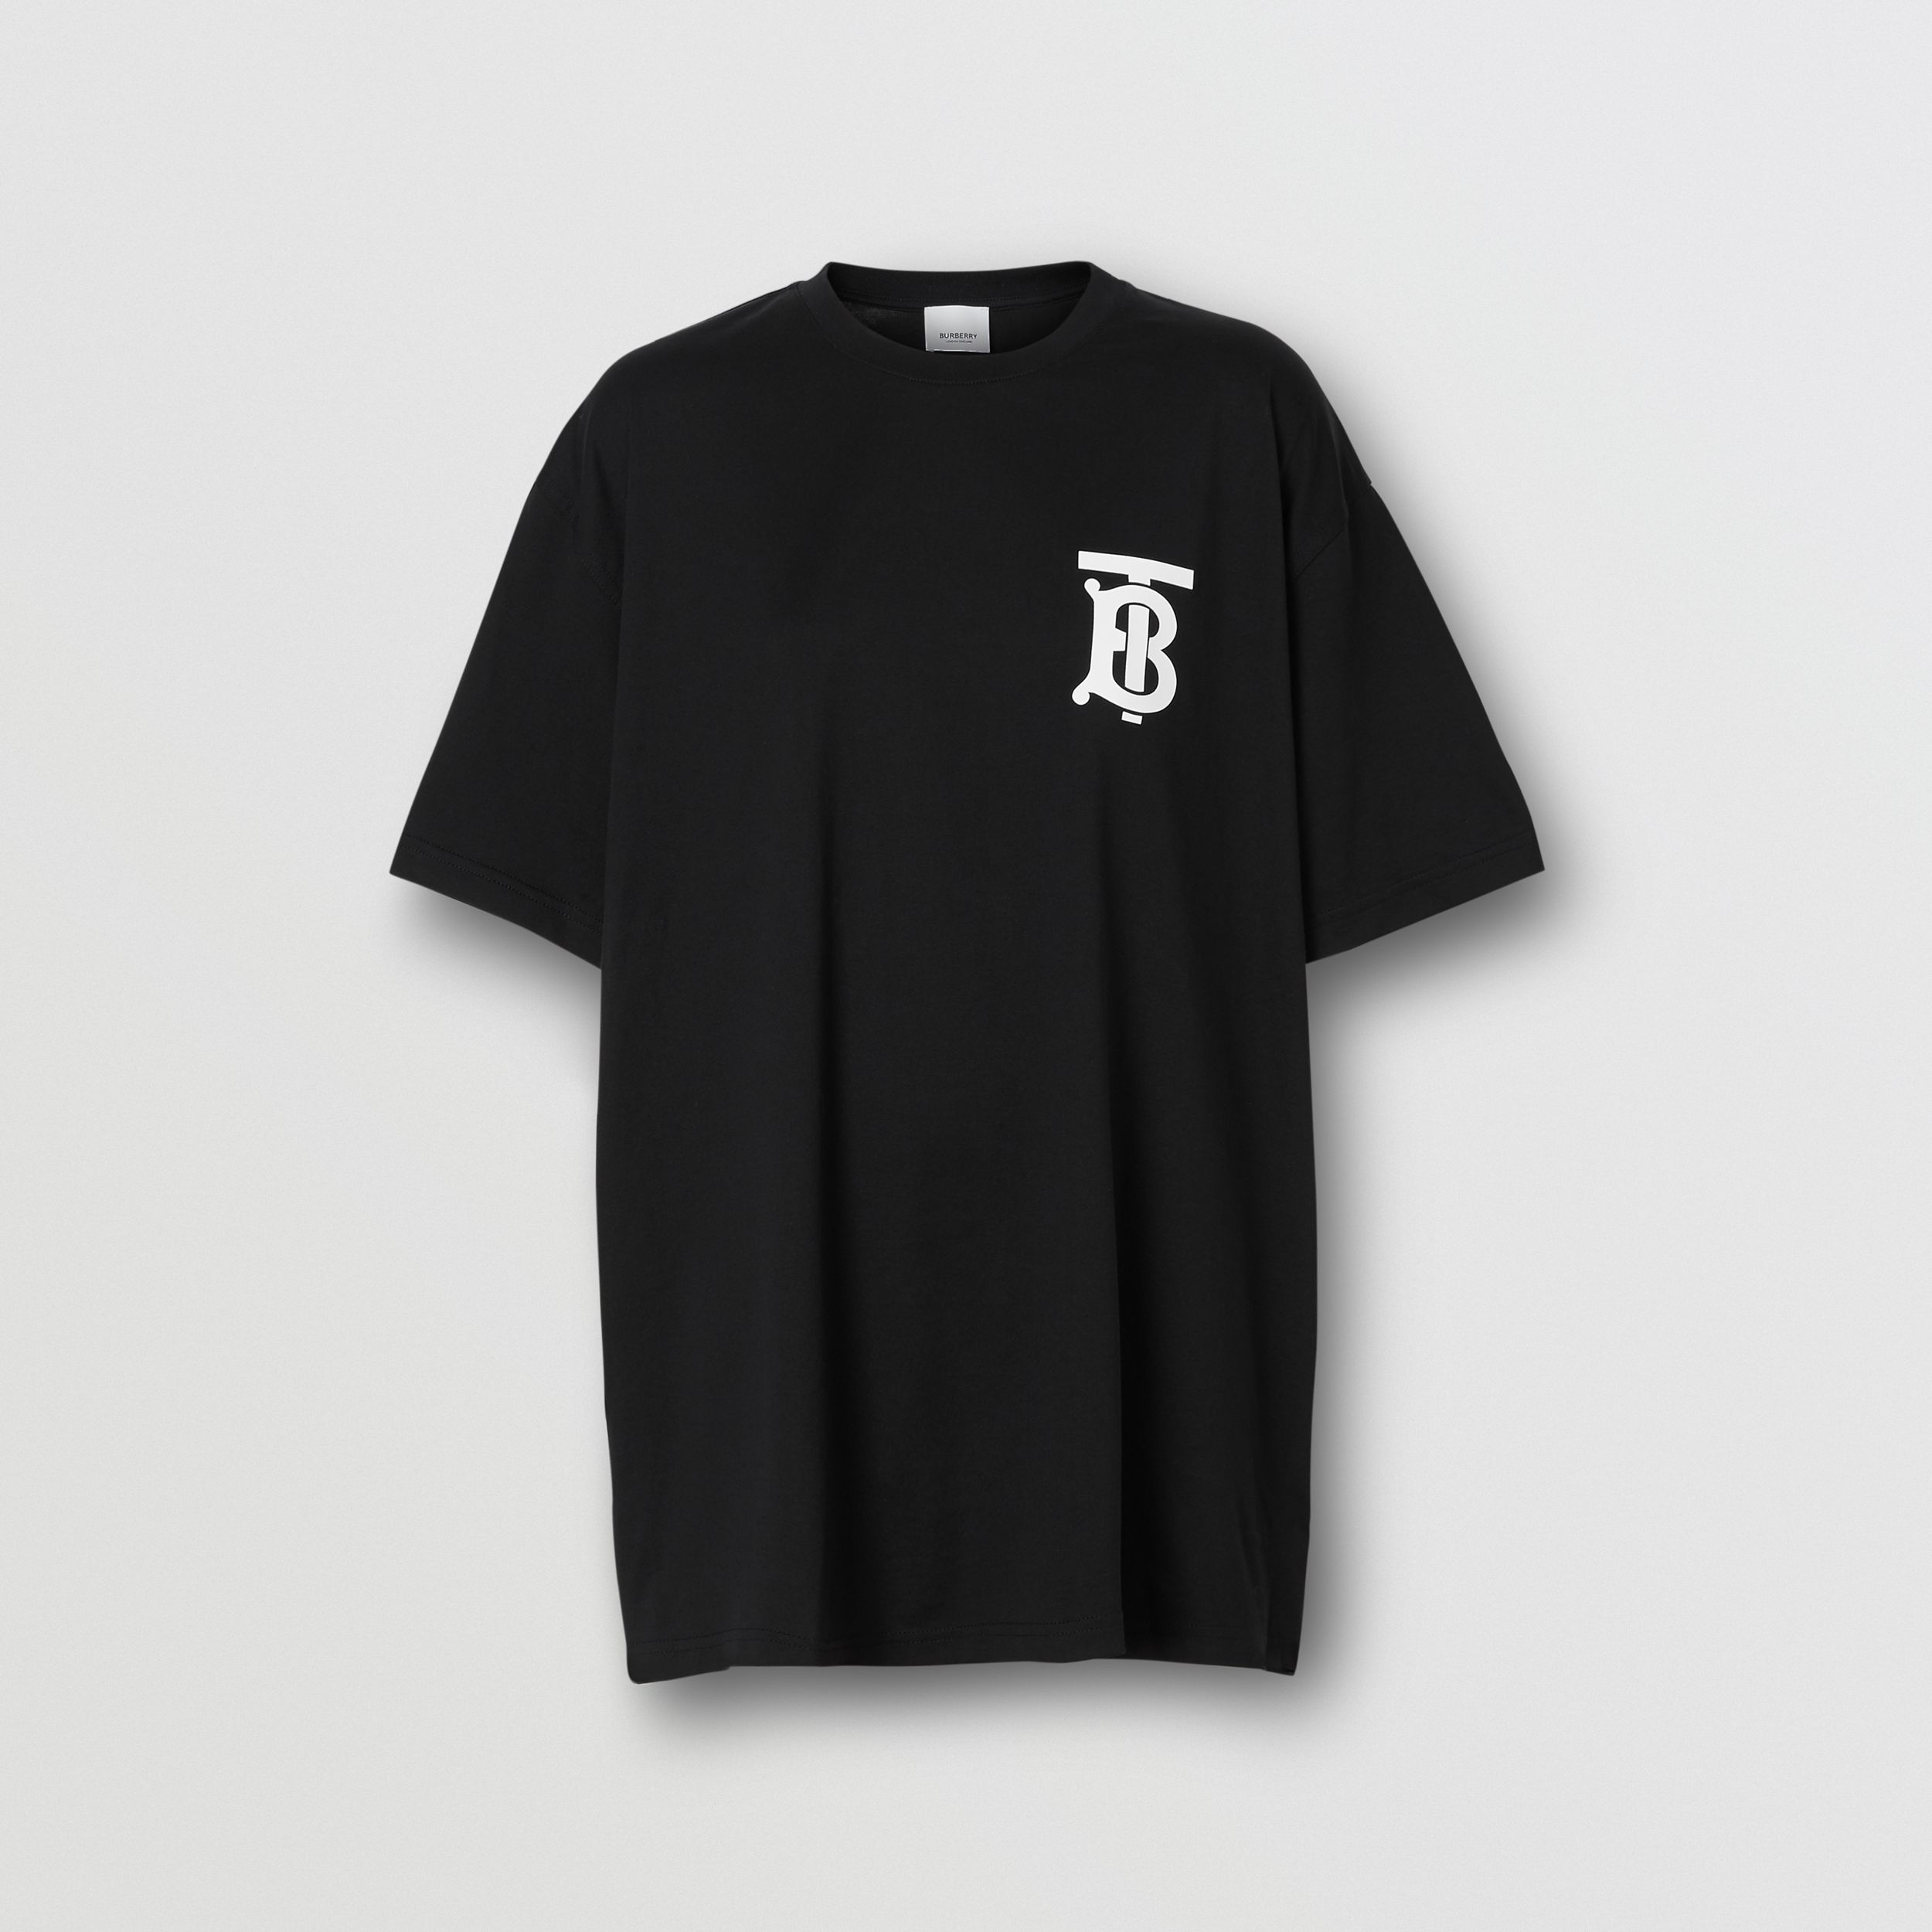 Monogram Motif Cotton Oversized T-shirt in Black - Women | Burberry United States - 4